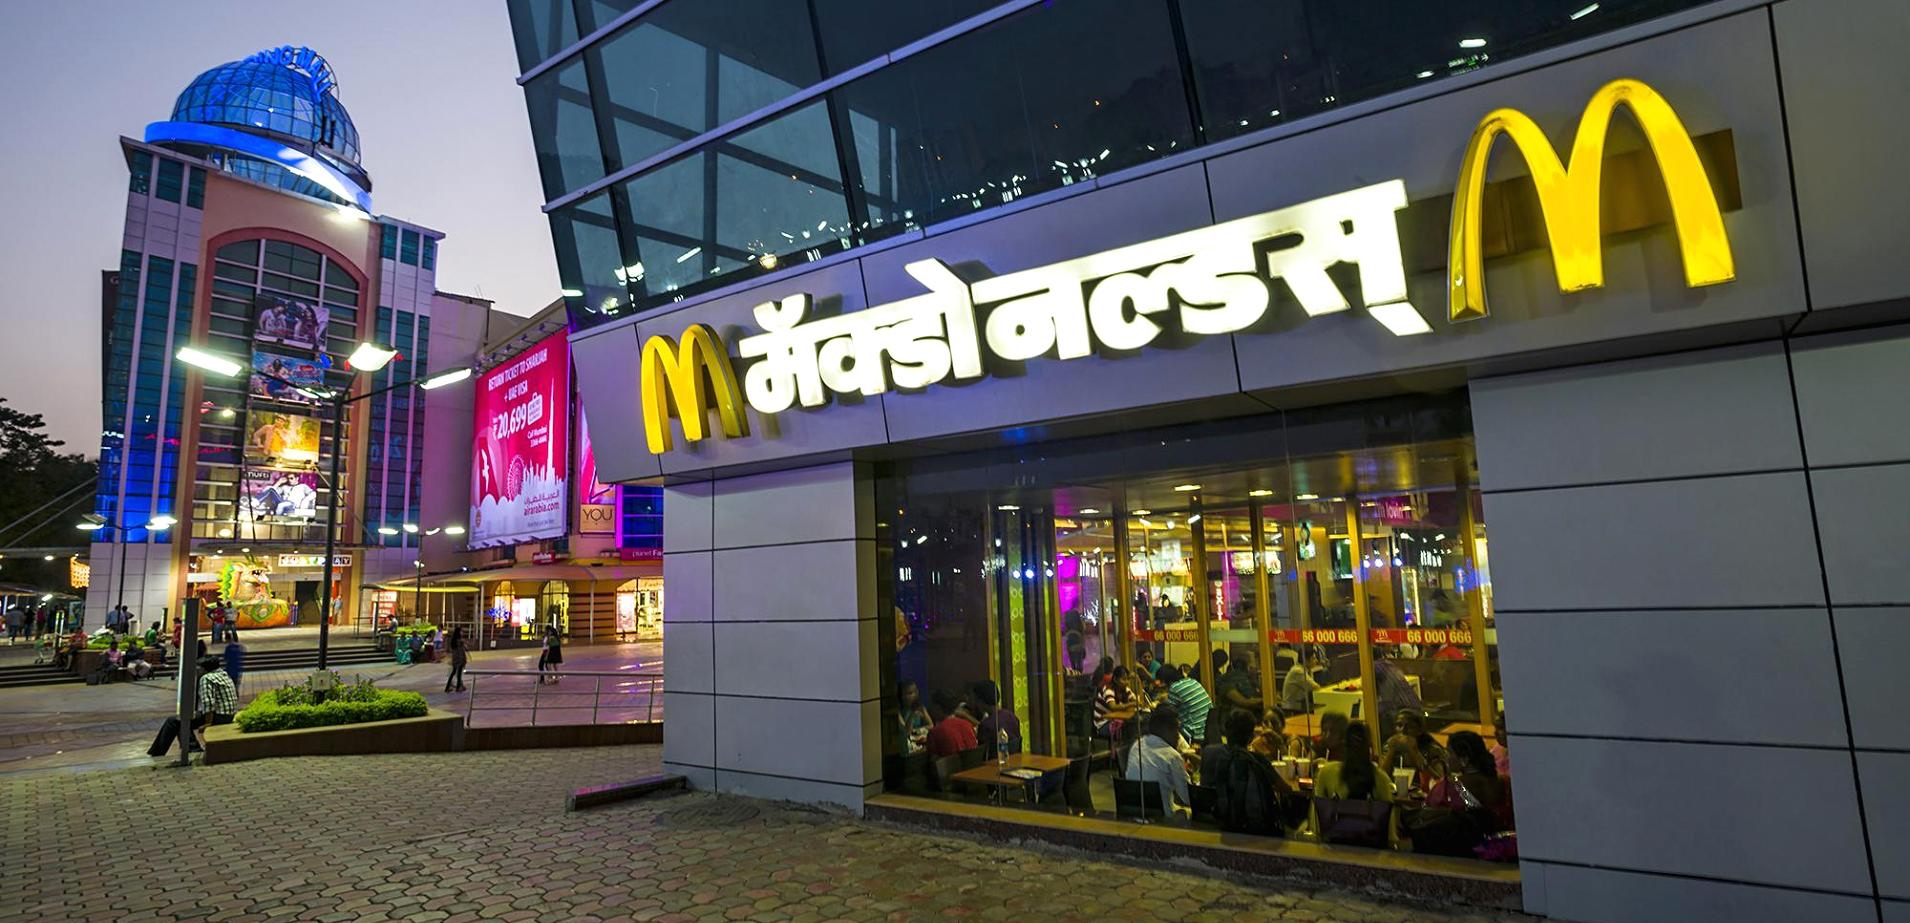 McDonalds in India, joint venture